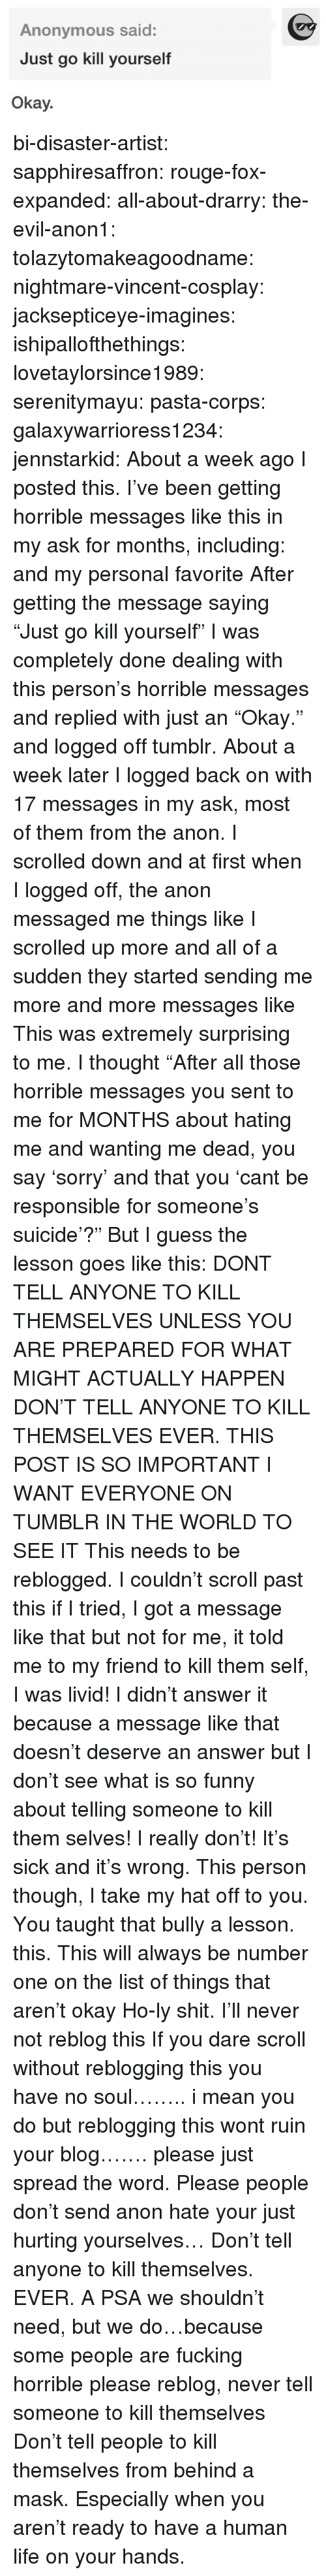 "Fucking, Funny, and Life: Anonymous said:  Just go kill yourself  Okay. bi-disaster-artist:  sapphiresaffron:  rouge-fox-expanded:  all-about-drarry:  the-evil-anon1:  tolazytomakeagoodname:  nightmare-vincent-cosplay:  jacksepticeye-imagines:  ishipallofthethings:  lovetaylorsince1989:  serenitymayu:  pasta-corps:  galaxywarrioress1234:  jennstarkid:  About a week ago I posted this. I've been getting horrible messages like this in my ask for months, including:  and my personal favorite After getting the message saying ""Just go kill yourself"" I was completely done dealing with this person's horrible messages and replied with just an ""Okay."" and logged off tumblr. About a week later I logged back on with 17 messages in my ask, most of them from the anon. I scrolled down and at first when I logged off, the anon messaged me things like I scrolled up more and all of a sudden they started sending me more and more messages like This was extremely surprising to me. I thought ""After all those horrible messages you sent to me for MONTHS about hating me and wanting me dead, you say 'sorry' and that you 'cant be responsible for someone's suicide'?"" But I guess the lesson goes like this: DONT TELL ANYONE TO KILL THEMSELVES UNLESS YOU ARE PREPARED FOR WHAT MIGHT ACTUALLY HAPPEN   DON'T TELL ANYONE TO KILL THEMSELVES EVER.  THIS POST IS SO IMPORTANT I WANT EVERYONE ON TUMBLR IN THE WORLD TO SEE IT  This needs to be reblogged. I couldn't scroll past this if I tried, I got a message like that but not for me, it told me to my friend to kill them self, I was livid! I didn't answer it because a message like that doesn't deserve an answer but I don't see what is so funny about telling someone to kill them selves! I really don't! It's sick and it's wrong. This person though, I take my hat off to you. You taught that bully a lesson.  this.  This will always be number one on the list of things that aren't okay  Ho-ly shit.  I'll never not reblog this  If you dare scroll without reblogging this you have no soul…….. i mean you do but reblogging this wont ruin your blog……. please just spread the word.  Please people don't send anon hate your just hurting yourselves…   Don't tell anyone to kill themselves. EVER.     A PSA we shouldn't need, but we do…because some people are fucking horrible  please reblog, never tell someone to kill themselves   Don't tell people to kill themselves from behind a mask. Especially when you aren't ready to have a human life on your hands."